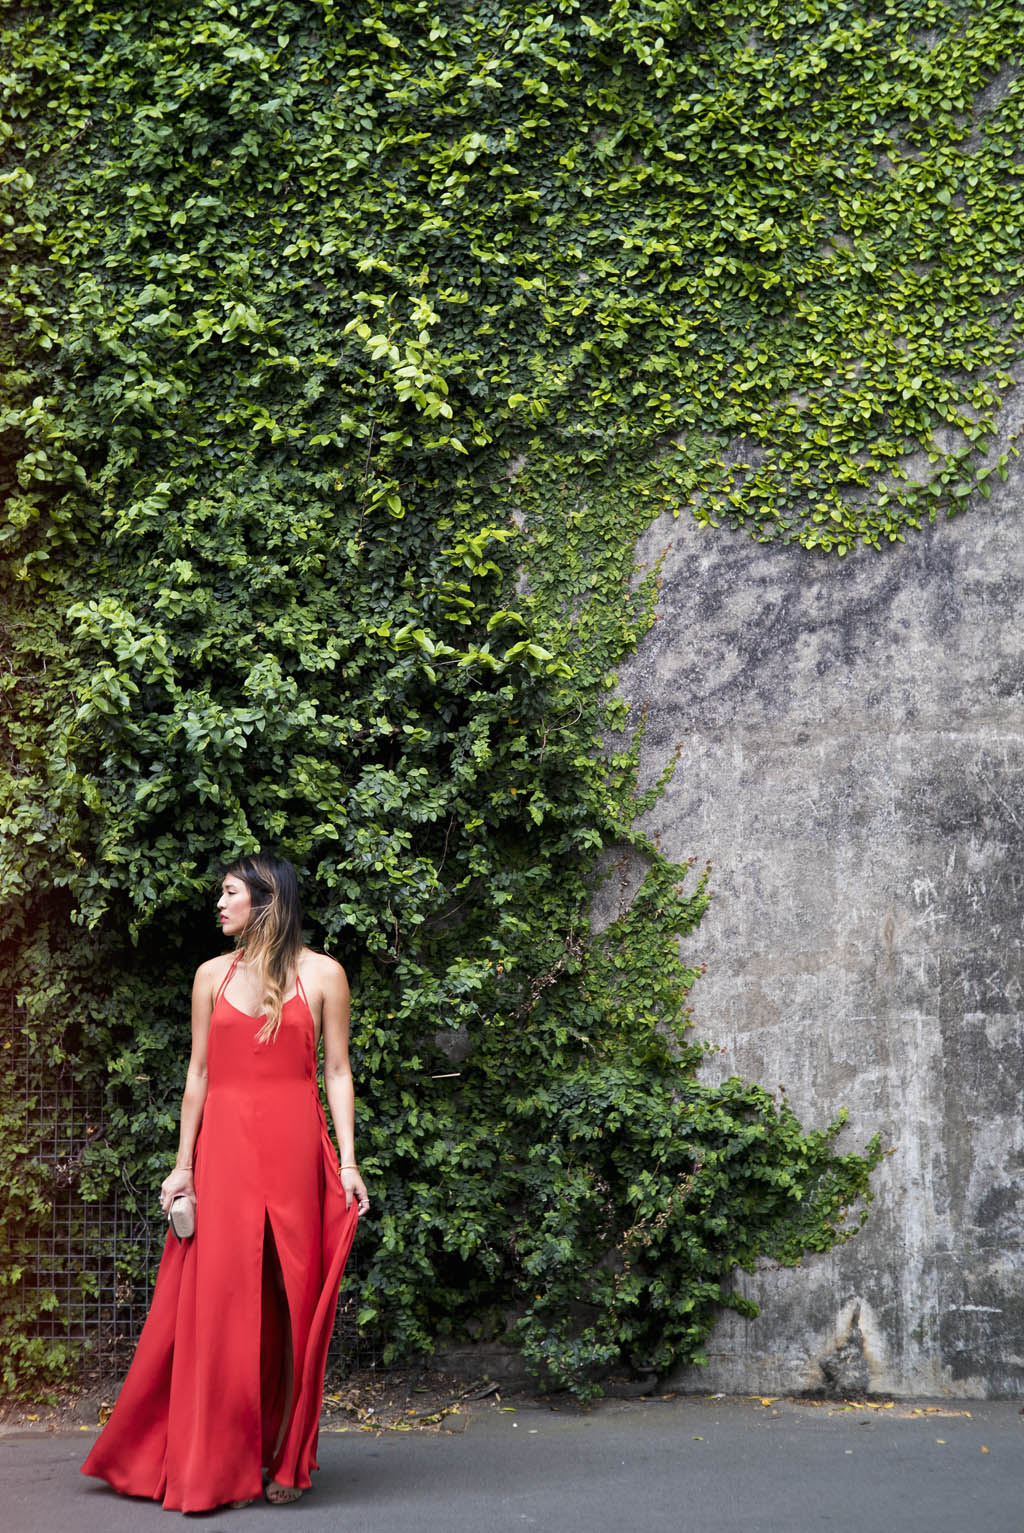 RED SILK DRESS OOTD